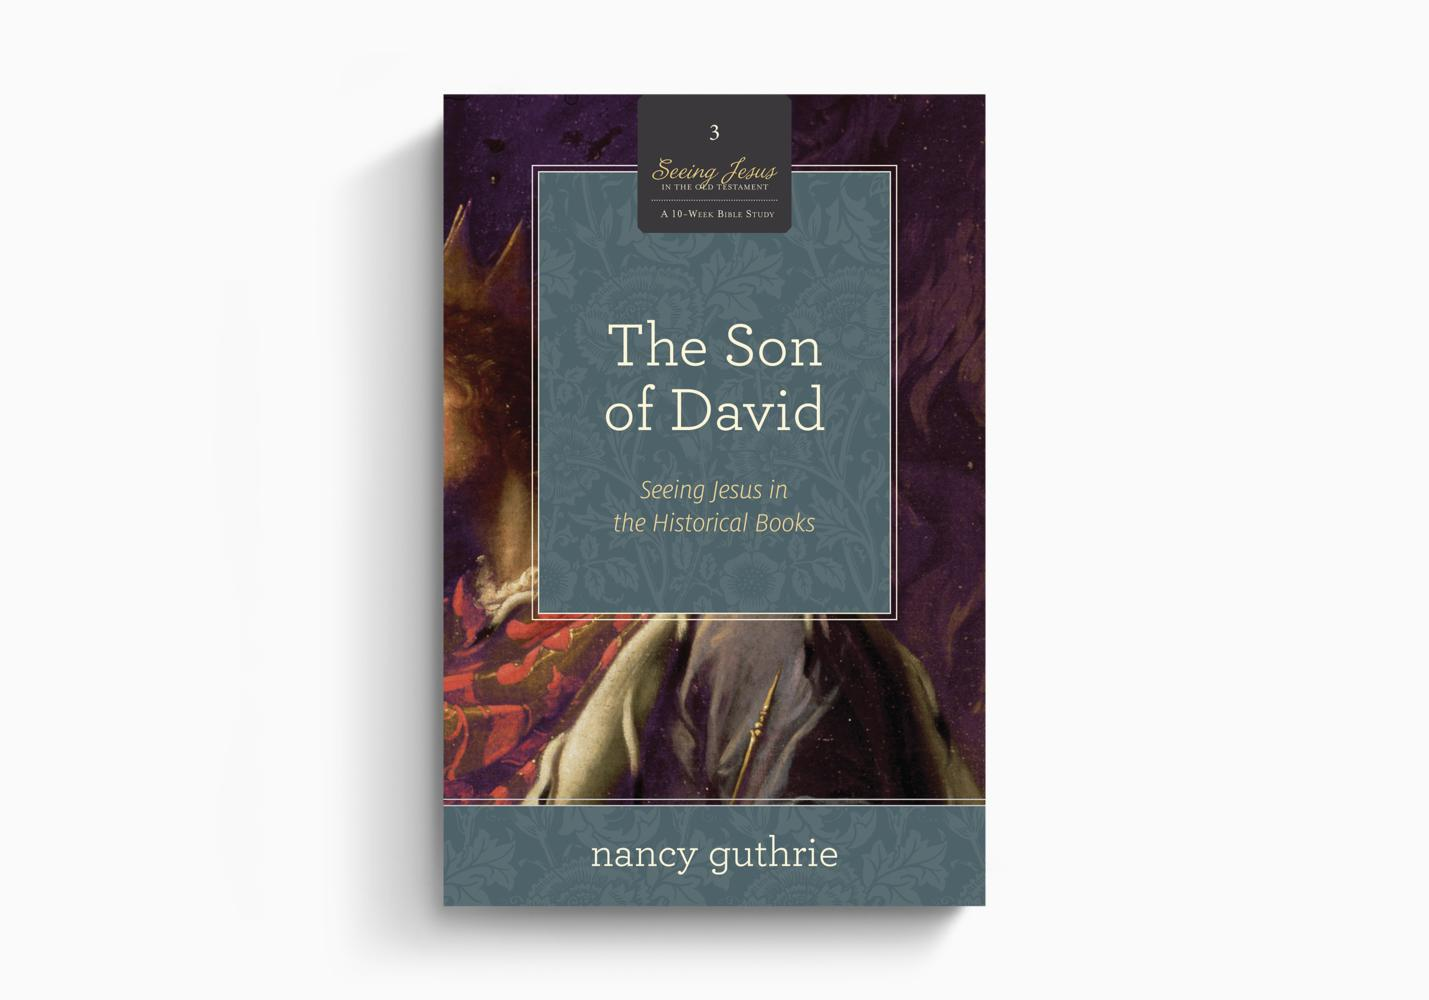 The Son of David